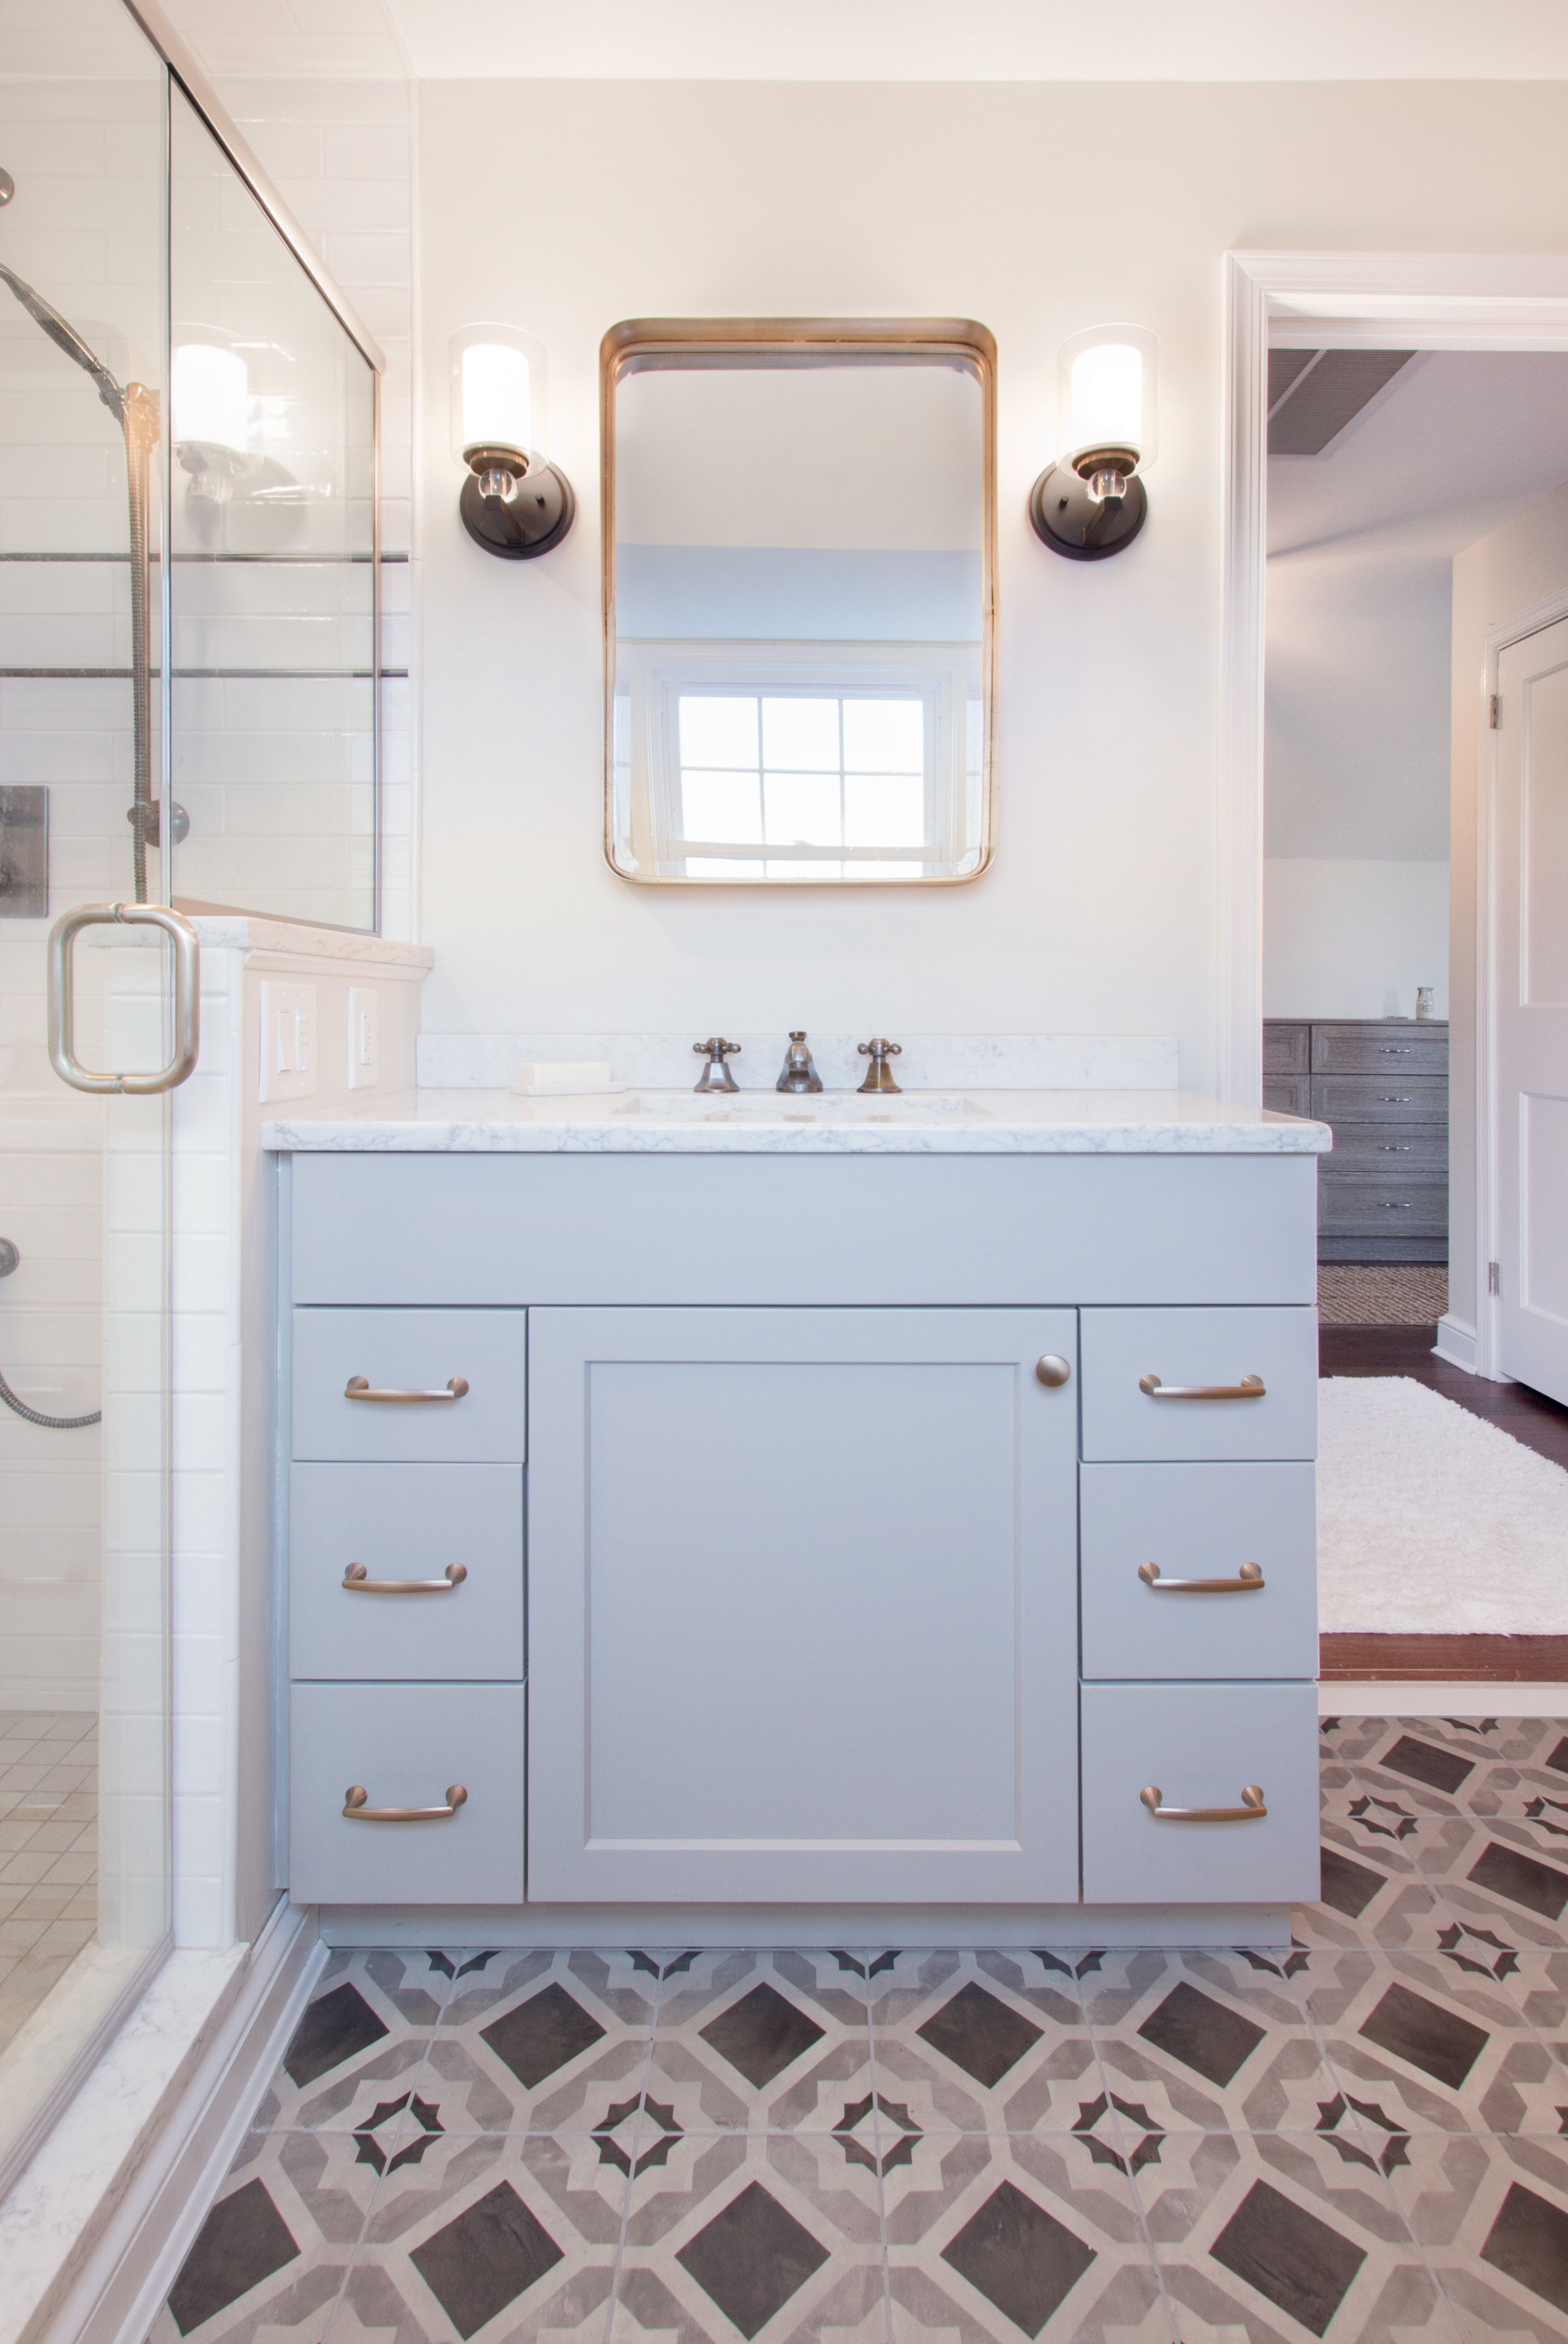 Mark Iv Kitchen Bath Gallery Designed And Installed This Stunning Bathroom Remodel Featuring Electric F Kitchen And Bath Remodeling Bathrooms Remodel Remodel